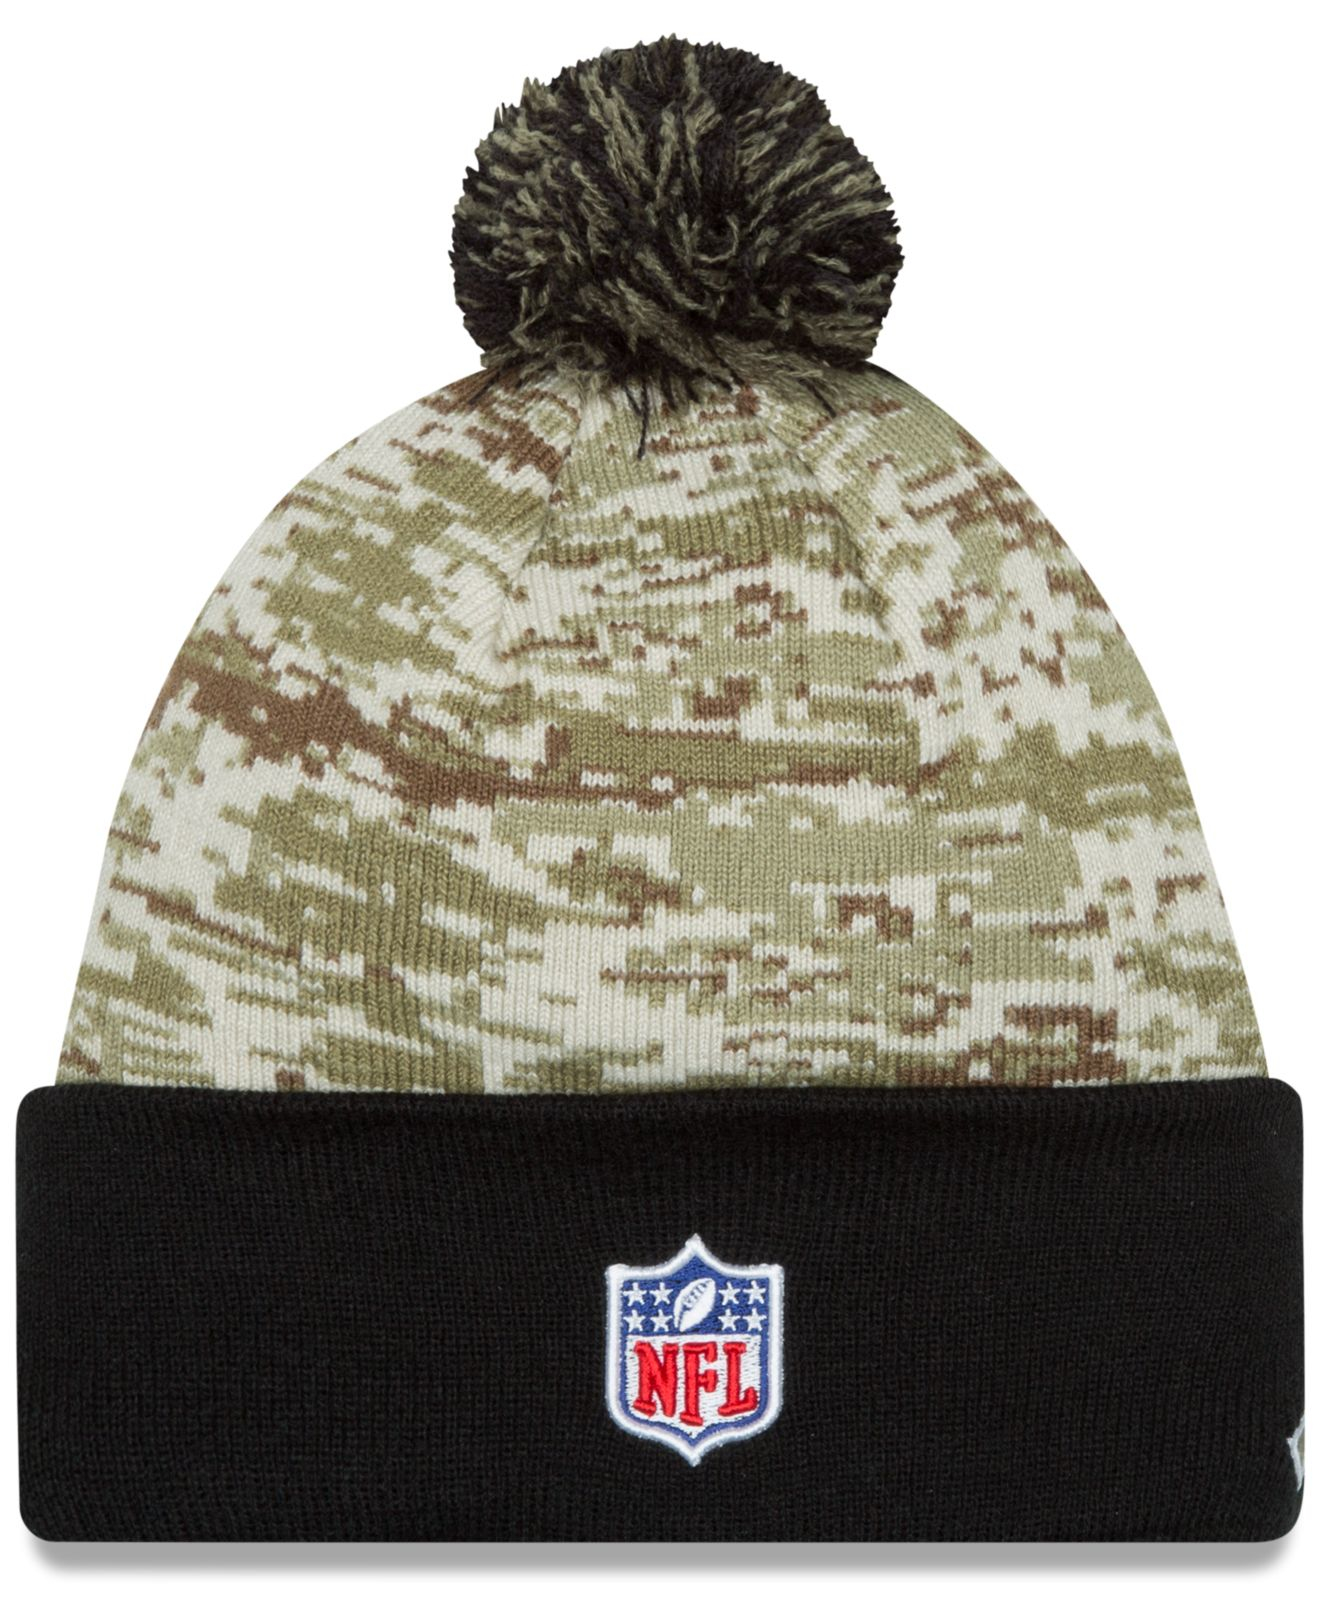 Lyst - KTZ Oakland Raiders Salute To Service Knit Hat in Green for Men fc0adb452